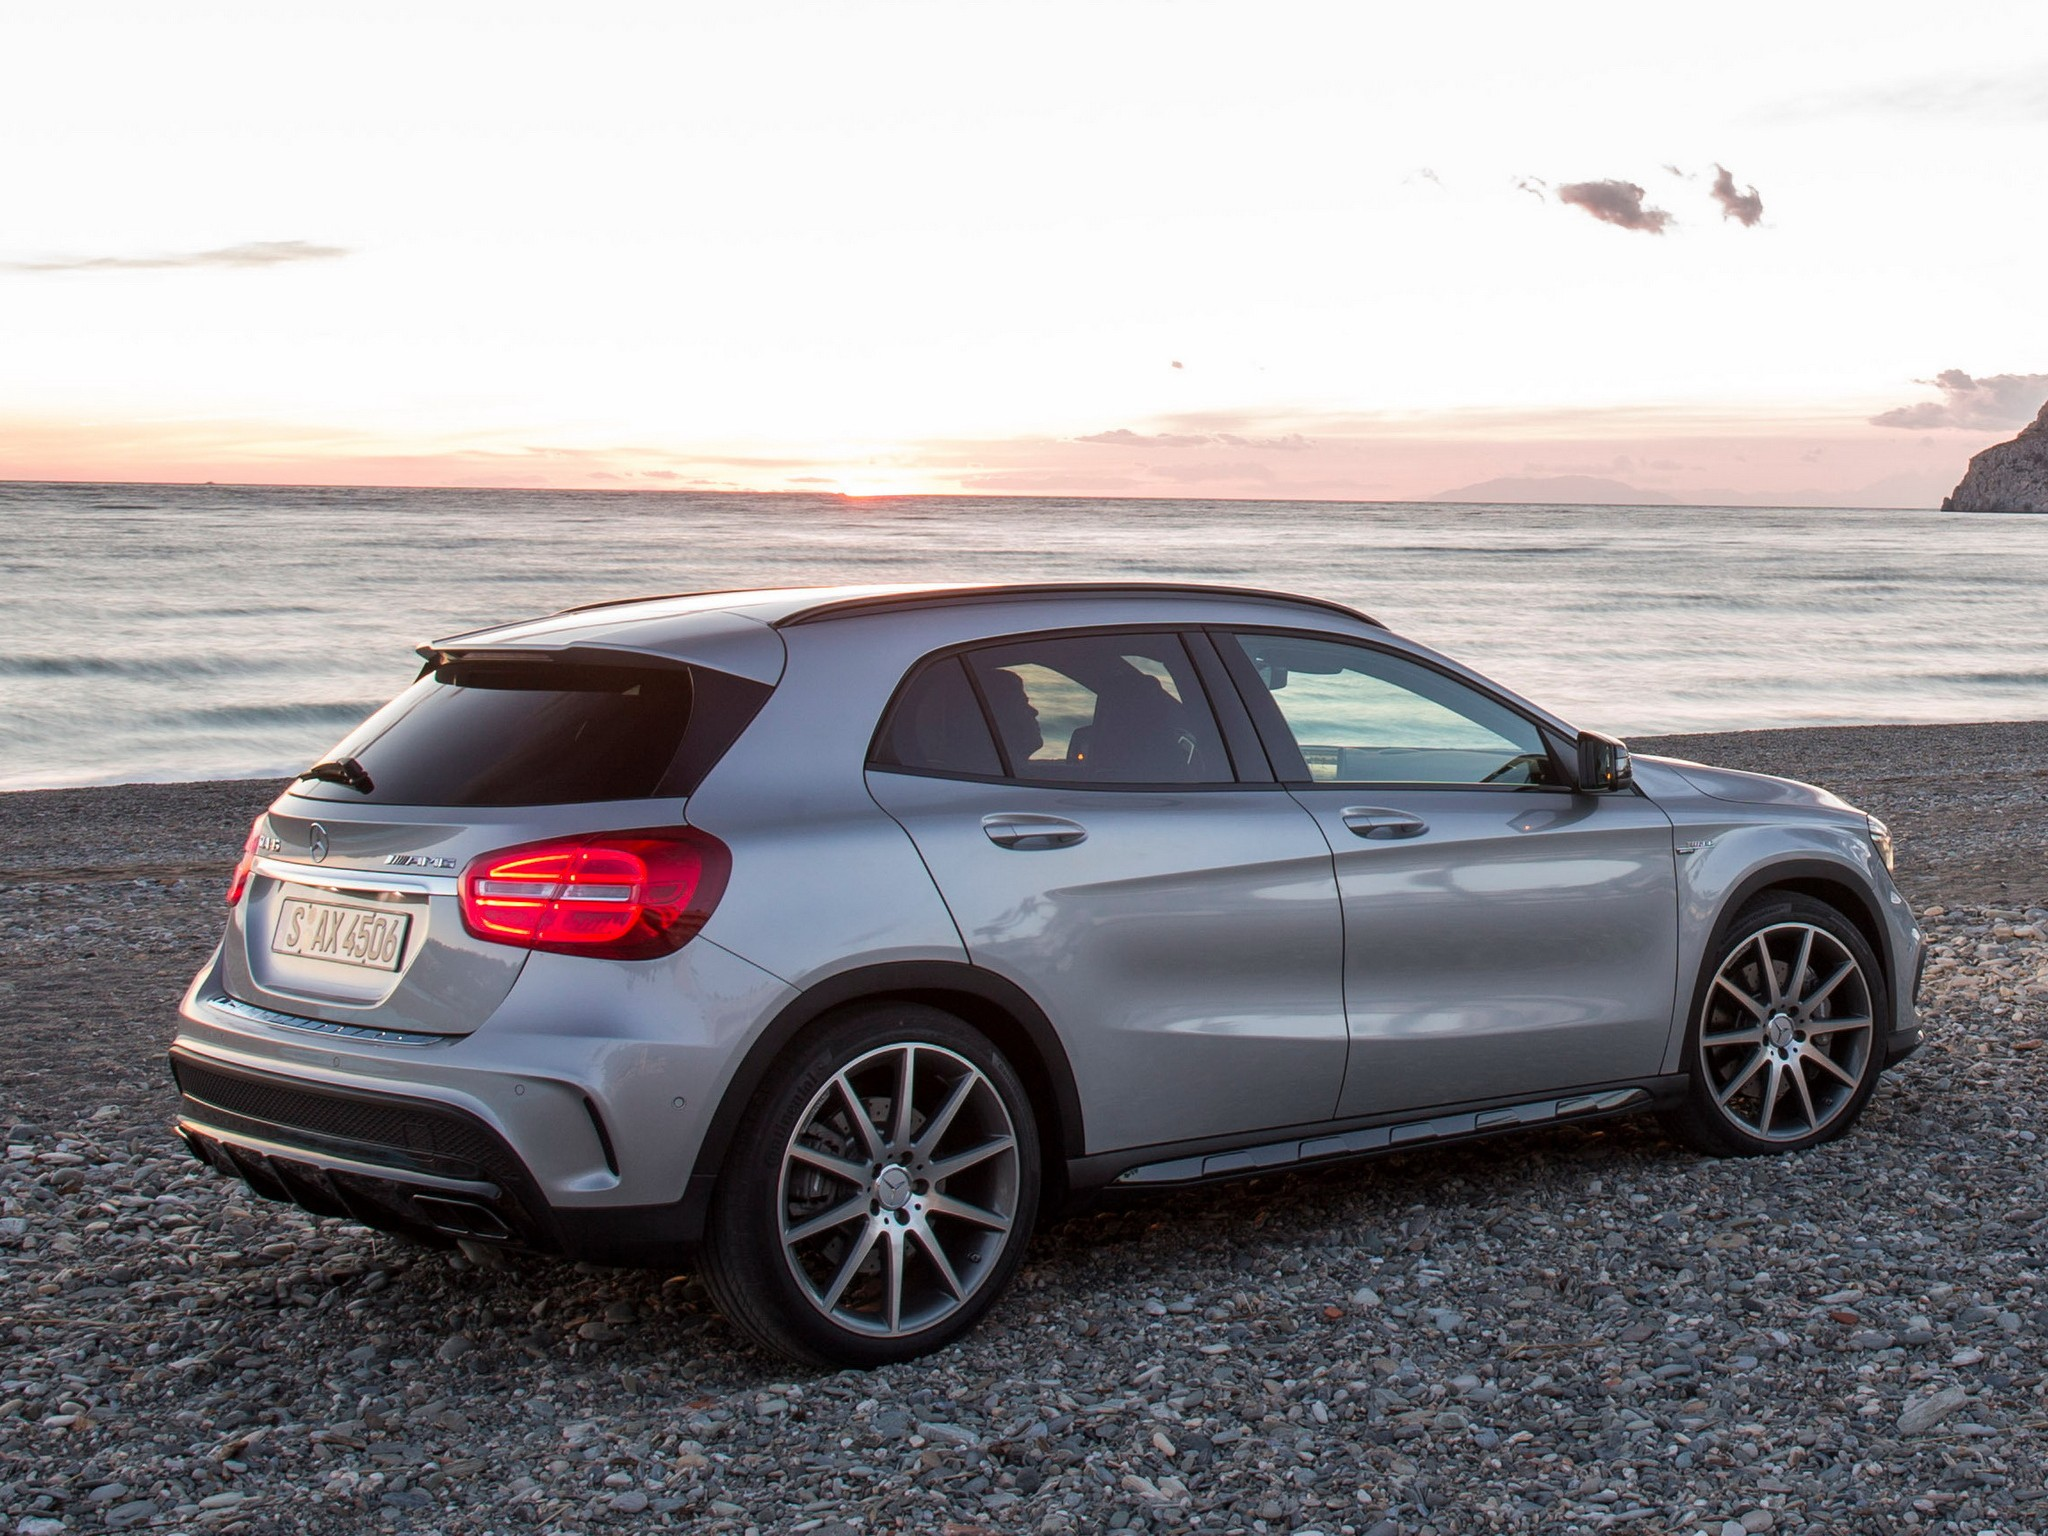 Mercedes benz gla 45 amg x156 specs 2014 2015 2016 for Mercedes benz gla release date